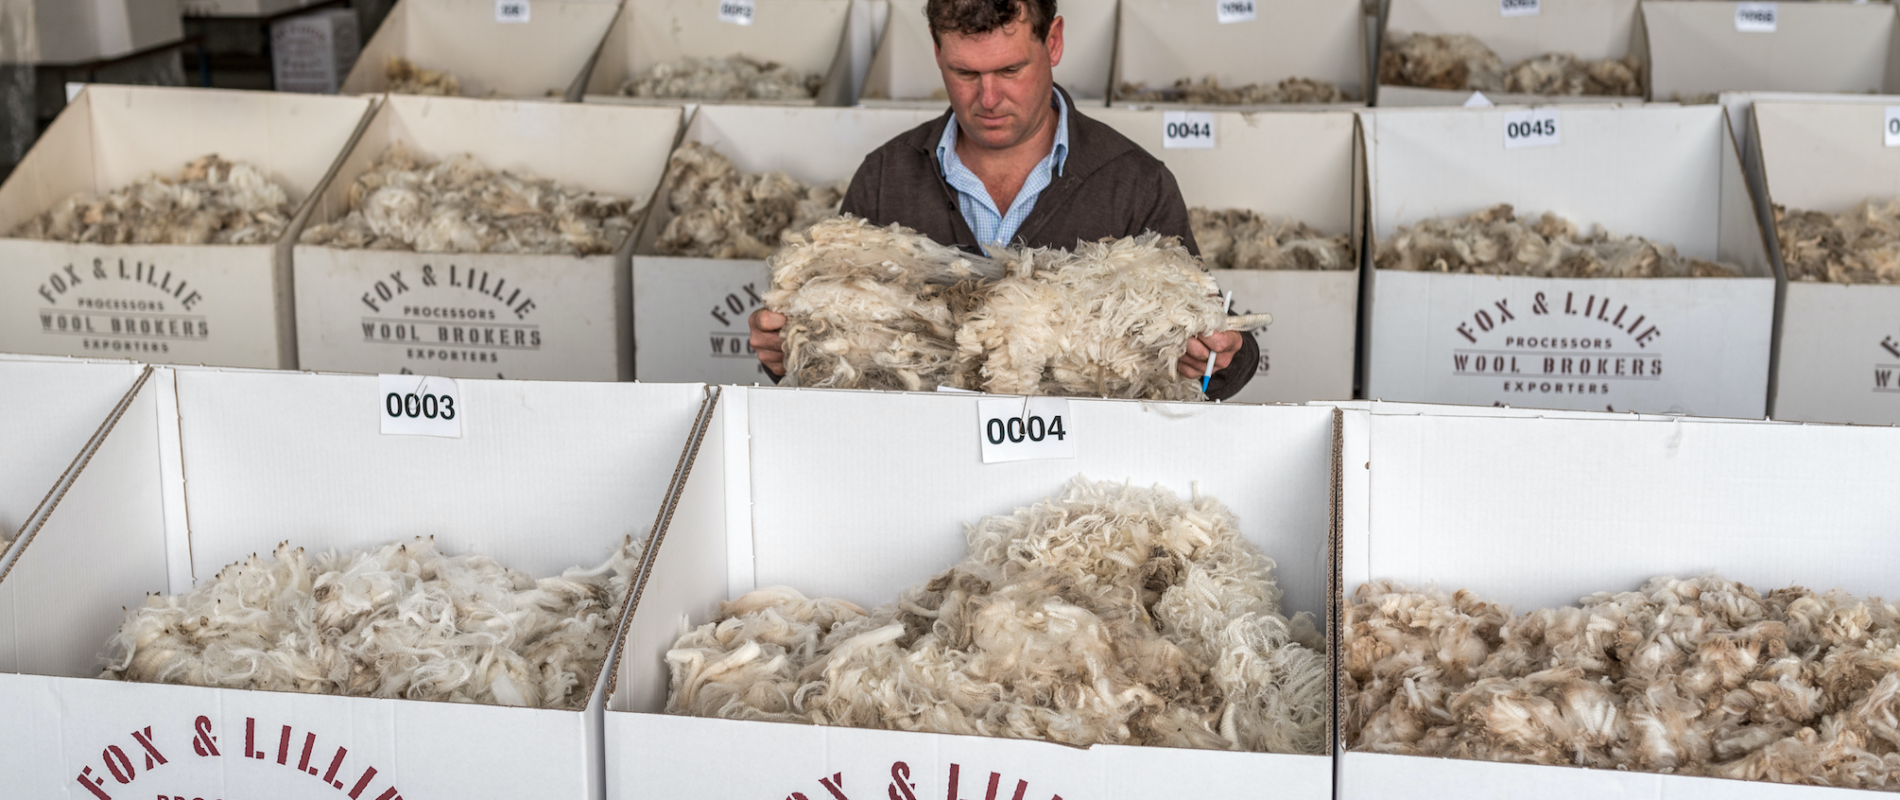 Wool Trading & Export